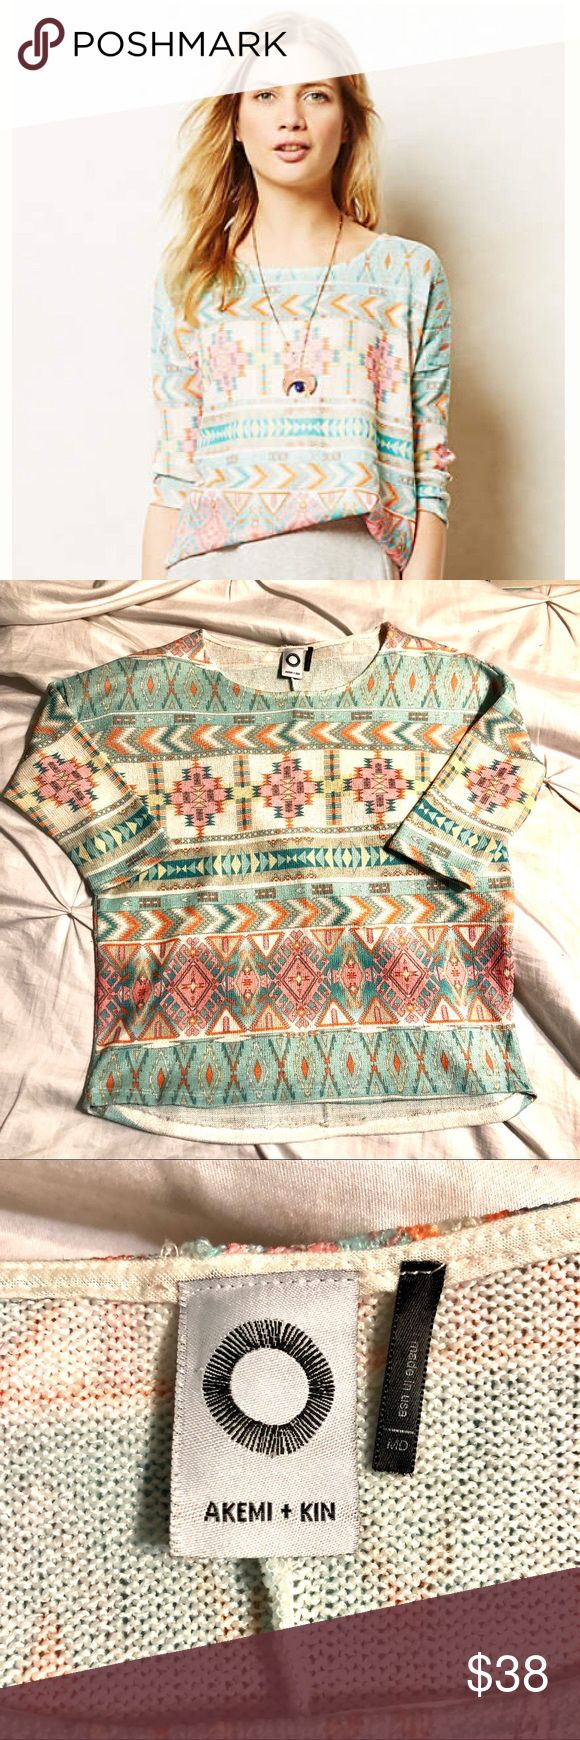 Anthropologie Akemi + Kin Morgana Pullover Sweater Anthropologie Akemi + Kin Morgana Pullover Sweater. Size Medium. Lightweight 3/4 sleeve tribal print Sweater. Great condition with one tiny pull on back shoulder. Anthropologie Sweaters